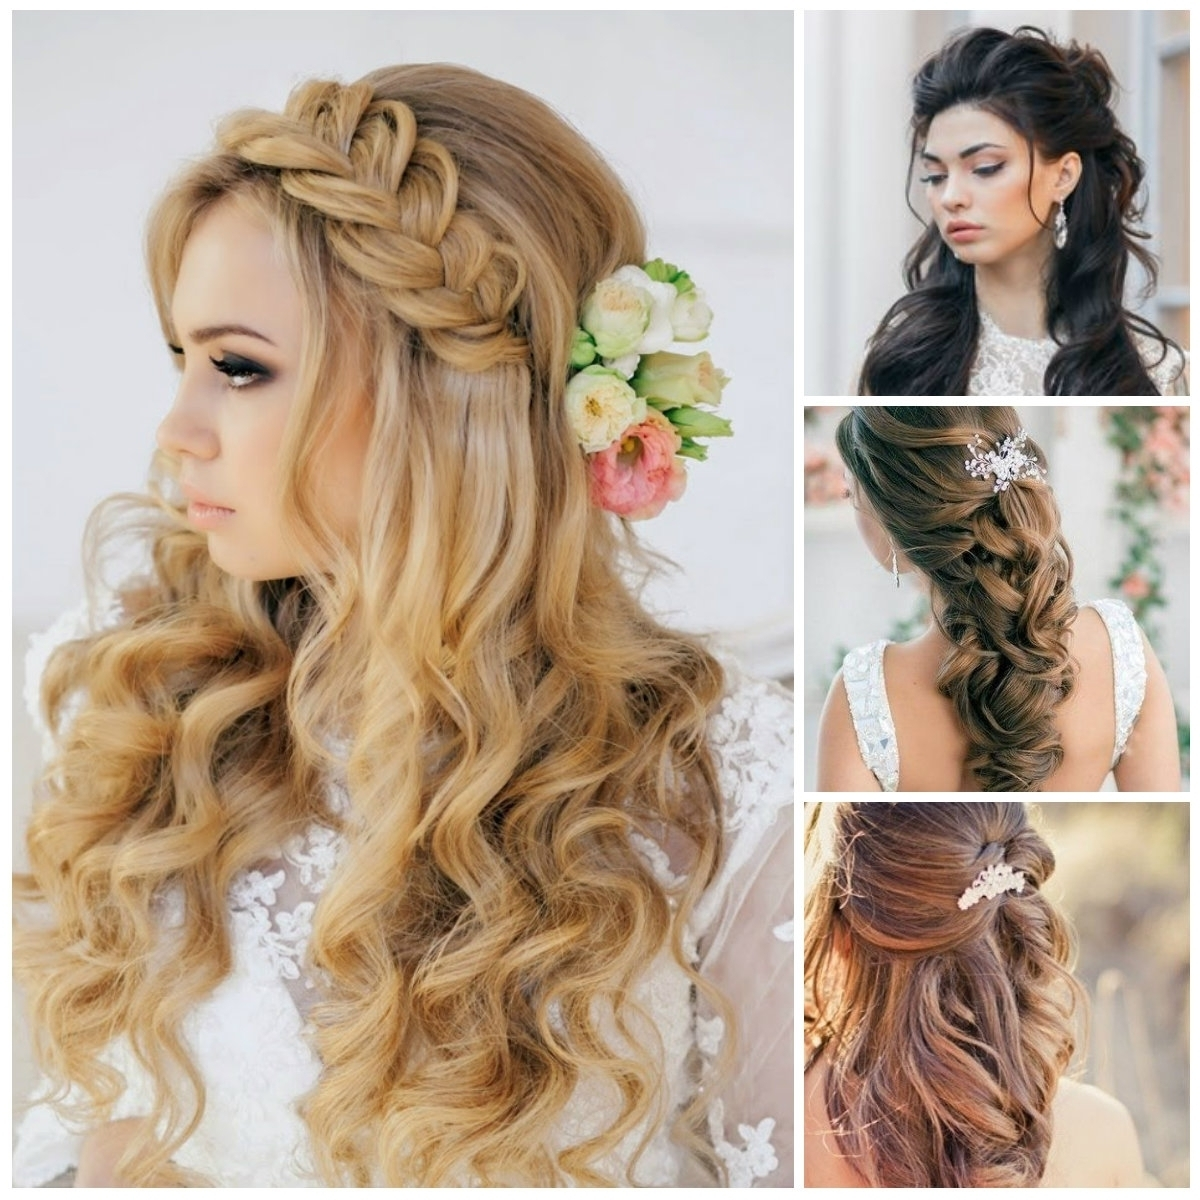 Favorite Wedding Hairstyles For Shoulder Length Curly Hair Intended For Stunning Wedding Hairstyles For Medium Length Ideas Bridal Shoulder (View 3 of 15)